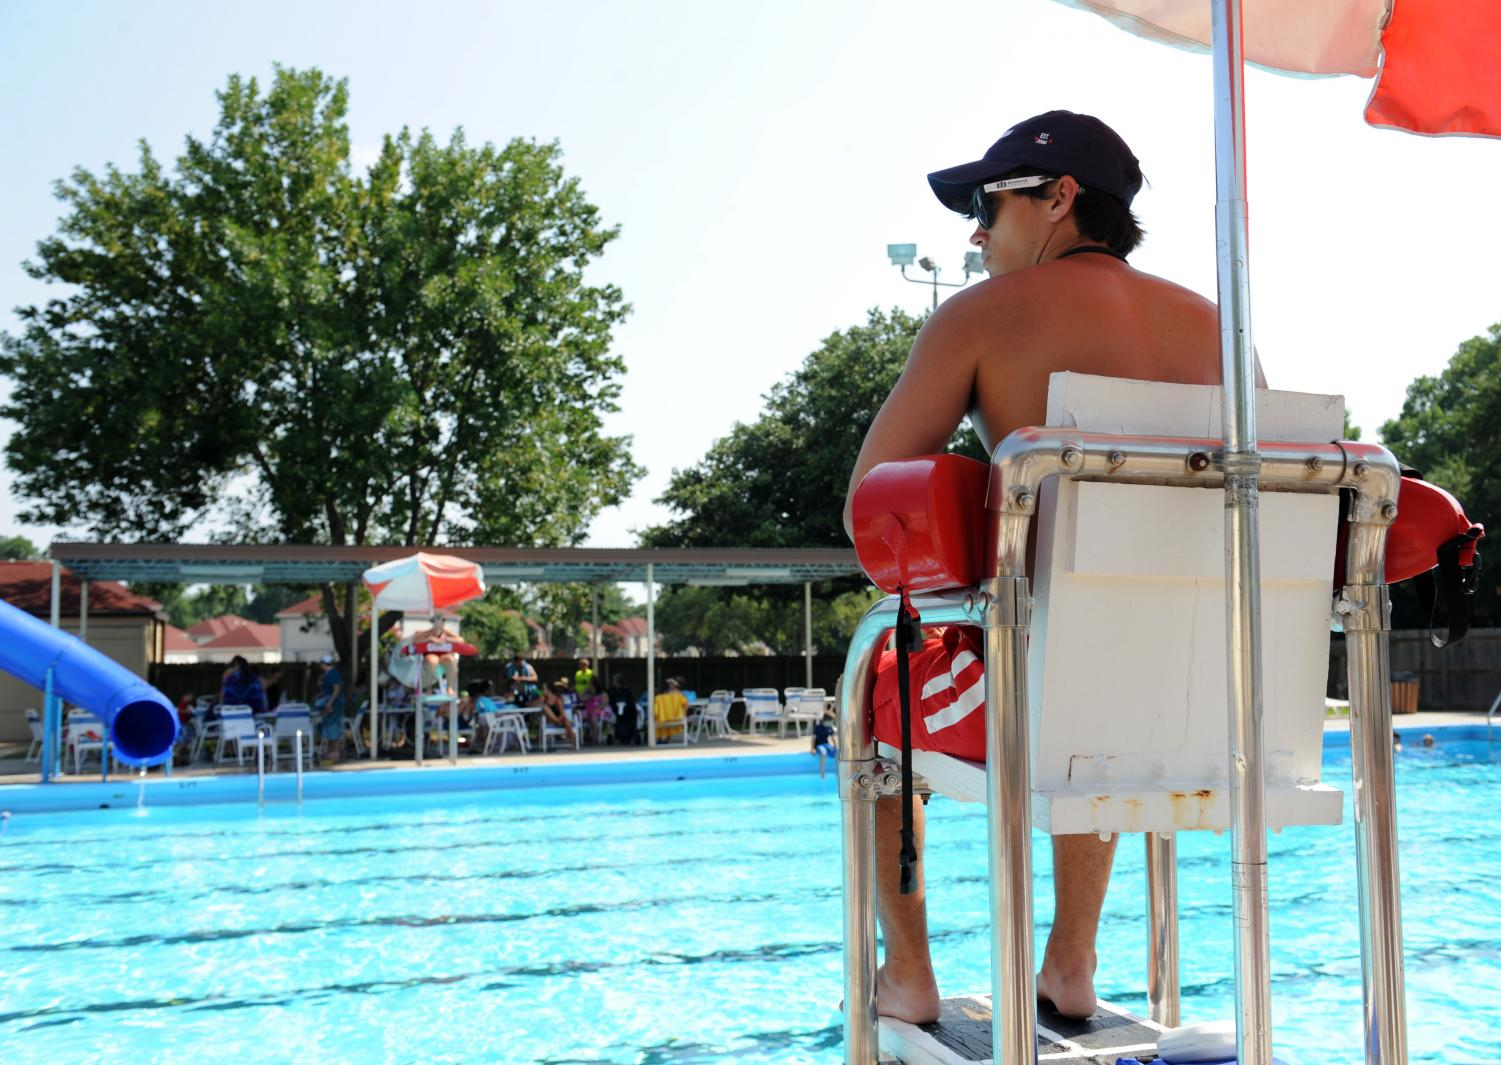 Freshman Henry Bagshaw lifeguards at his local pool. The summer is a great time for students to earn a little extra money in their free time. Photo courtesy of Molly Benson.